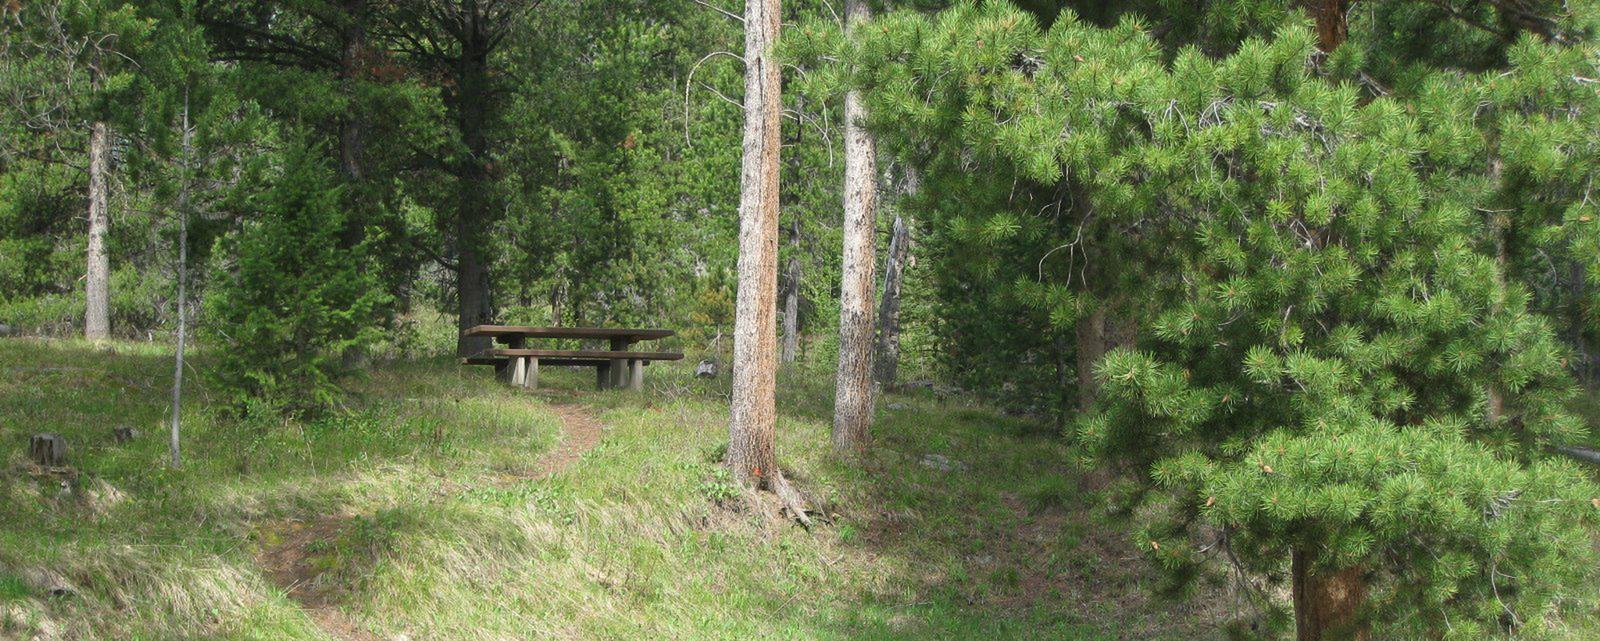 Site A1, surrounded by pine trees, picnic table & fire ringSite A1